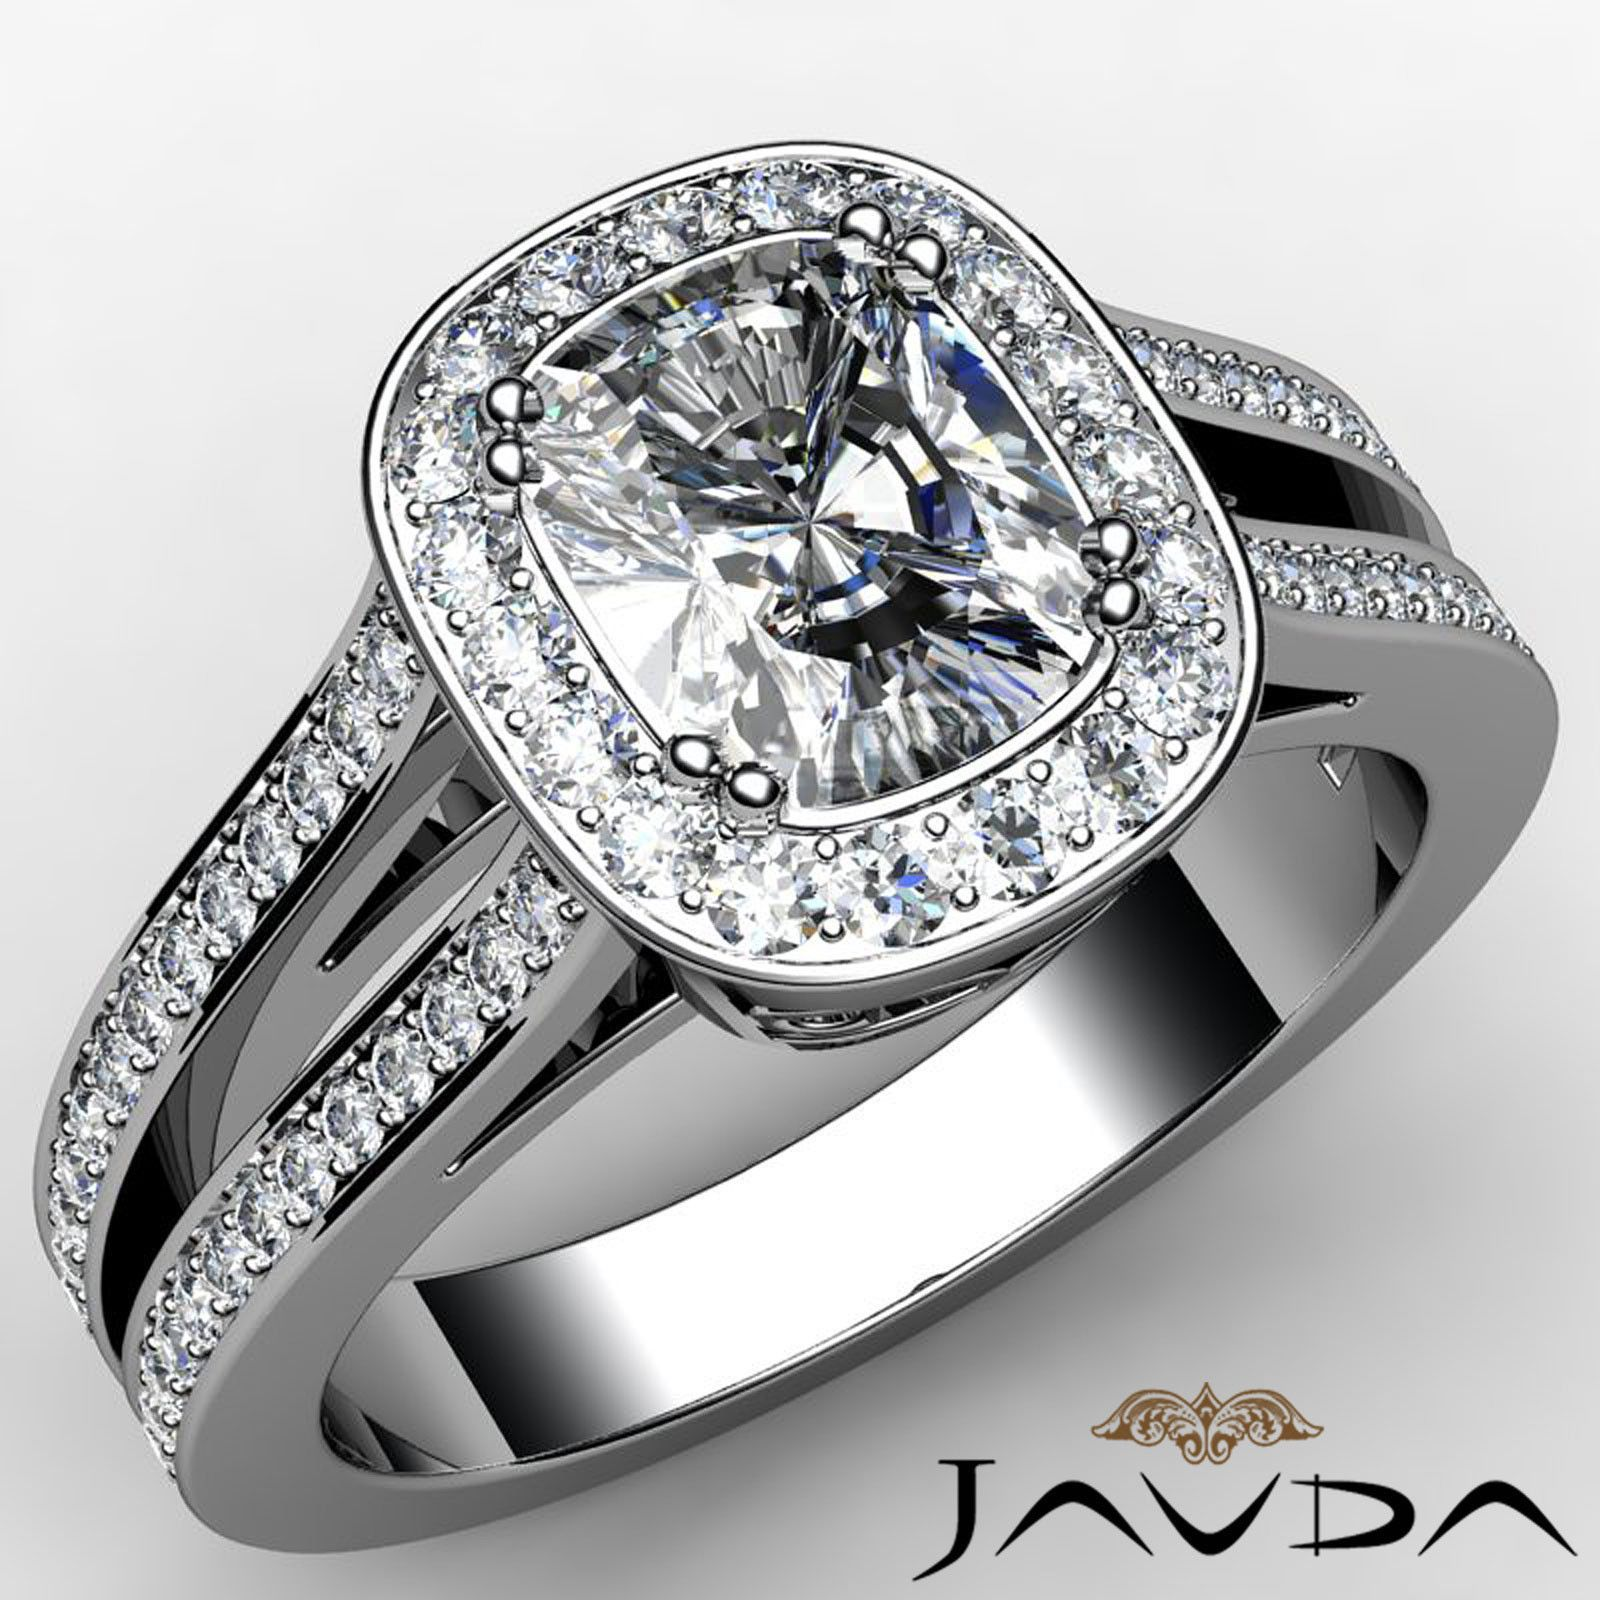 Cushion diamond split shank pave engagement ring gia f color vs